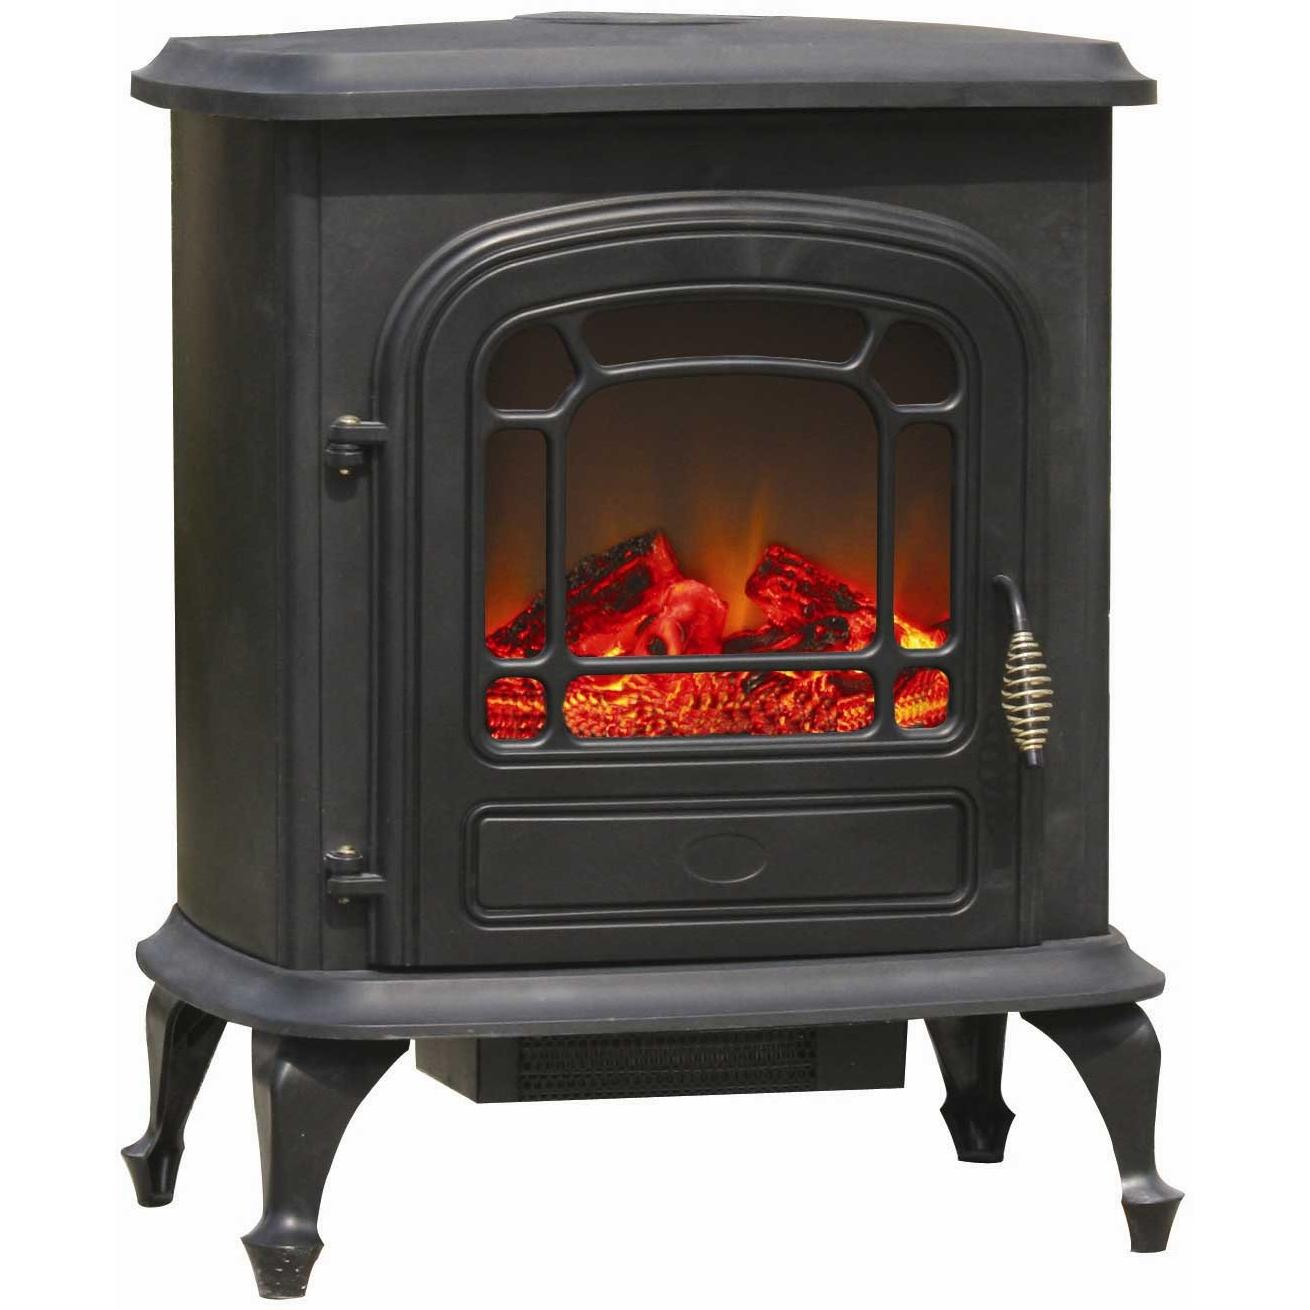 Fire Sense 1350 Watt Electric Stove Fireplace